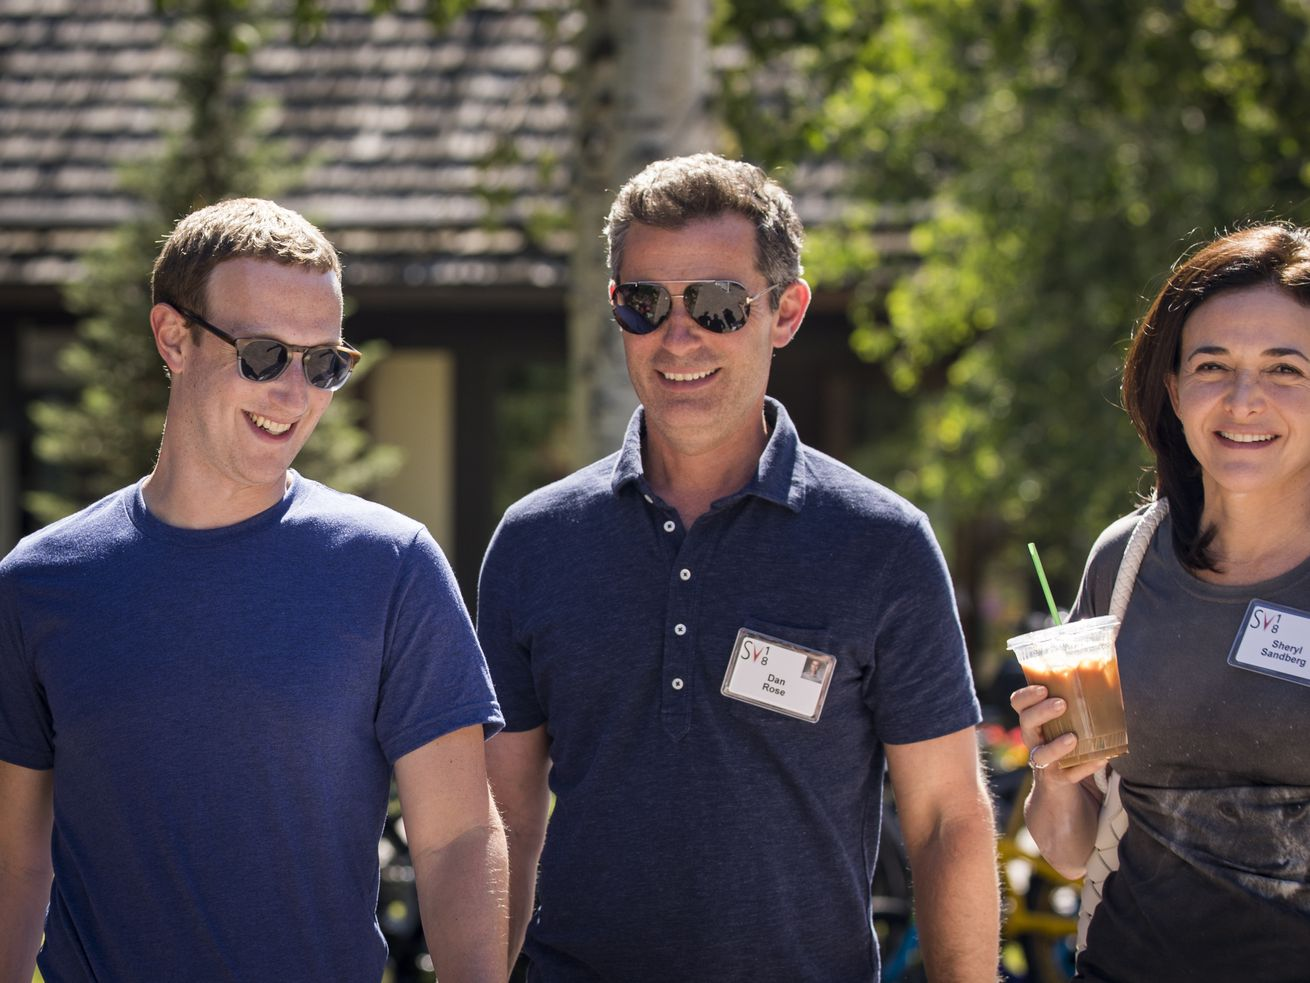 Facebook's board is throwing public support behind Mark Zuckerberg and Sheryl Sandberg — who are on Facebook's board